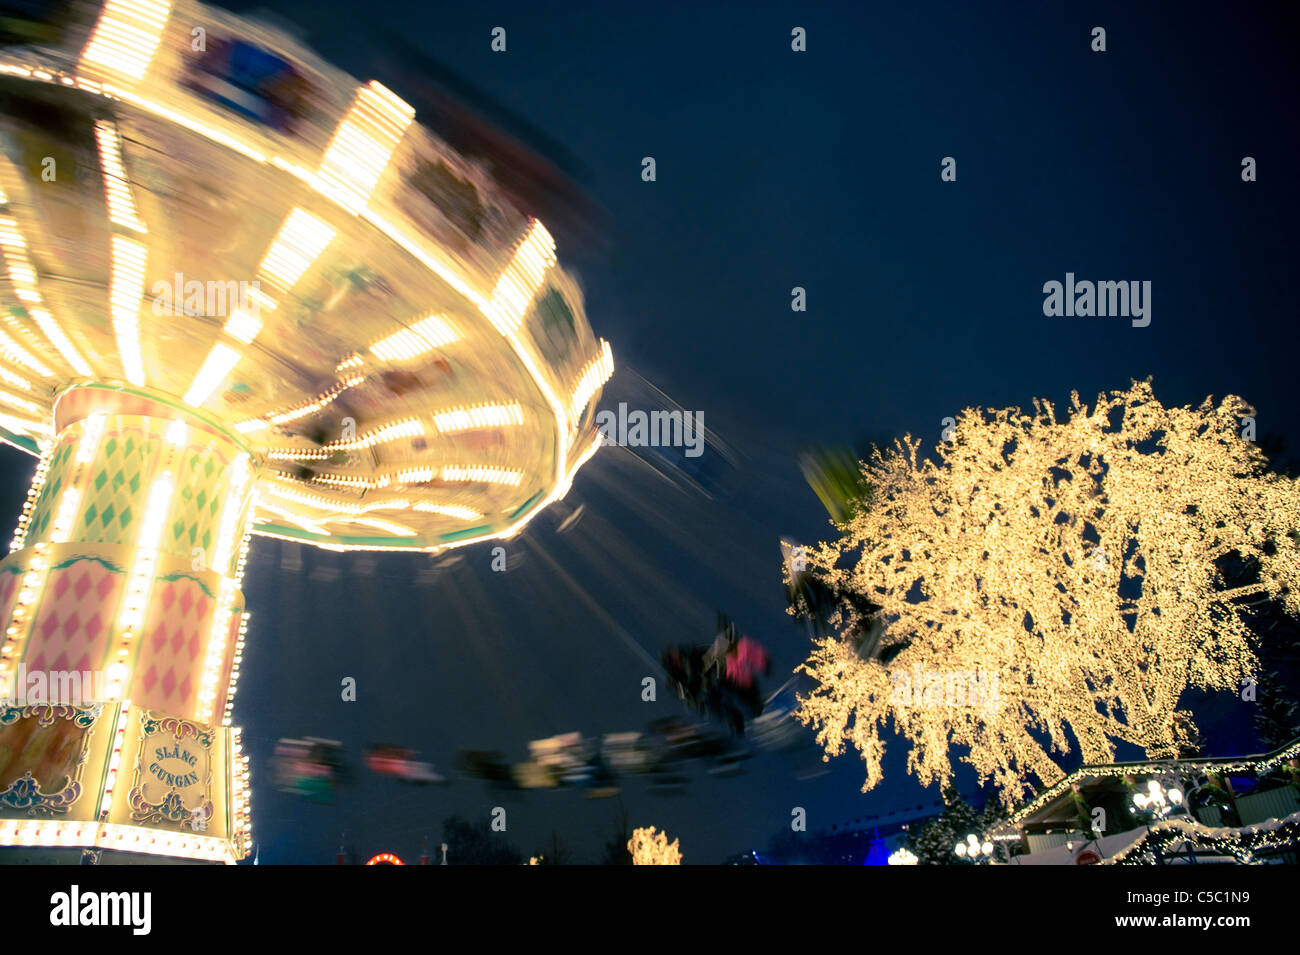 Motion blur of people spinning on illuminated swing ride by lit tree against clear blue sky at night - Stock Image